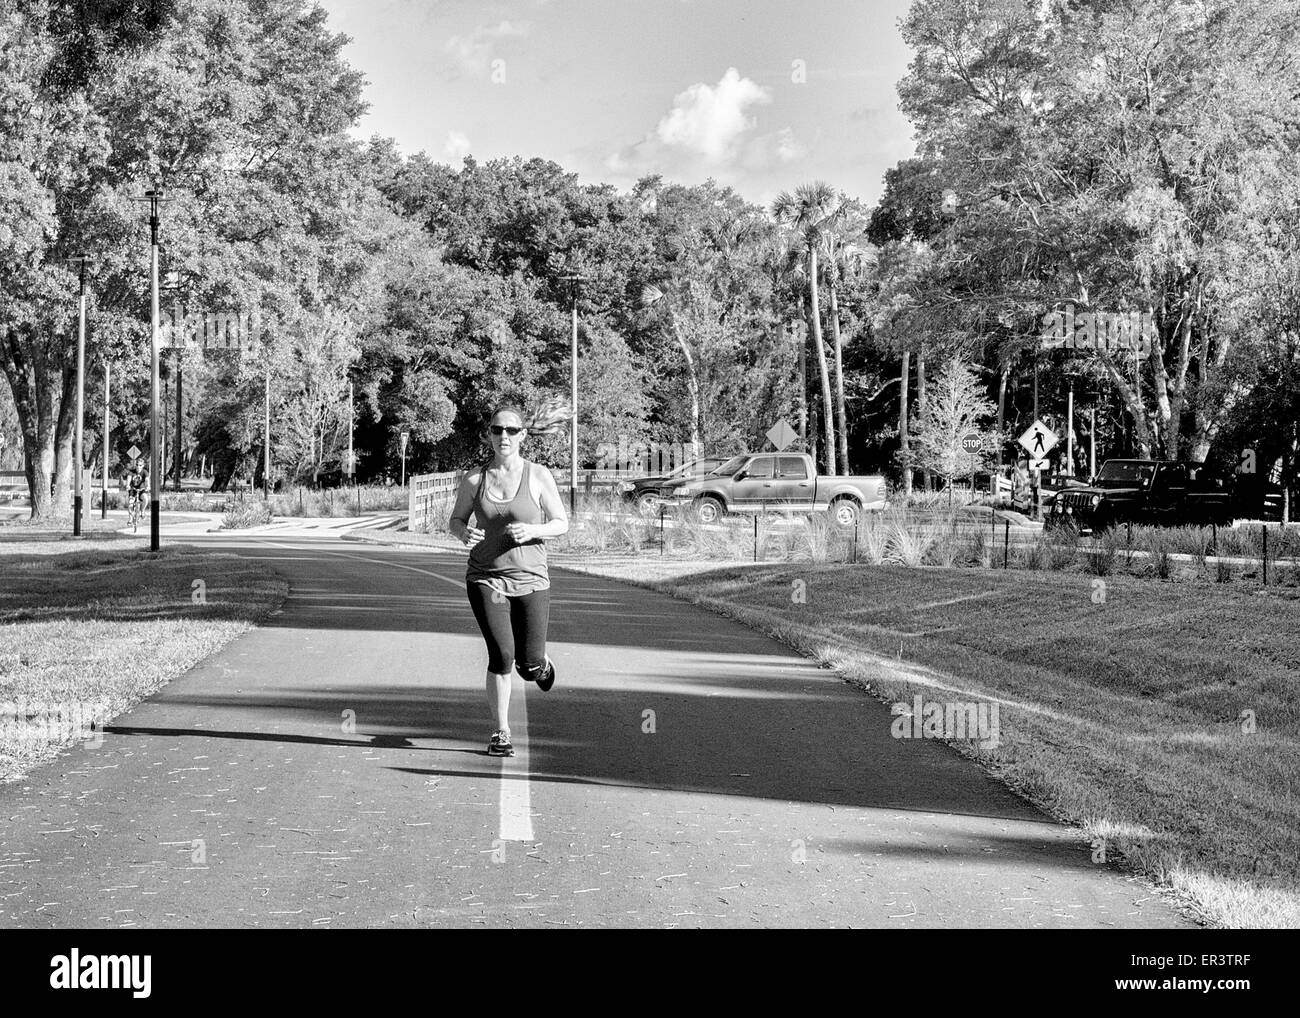 Woman jogging/running for exercise.  the image is black and white - Stock Image